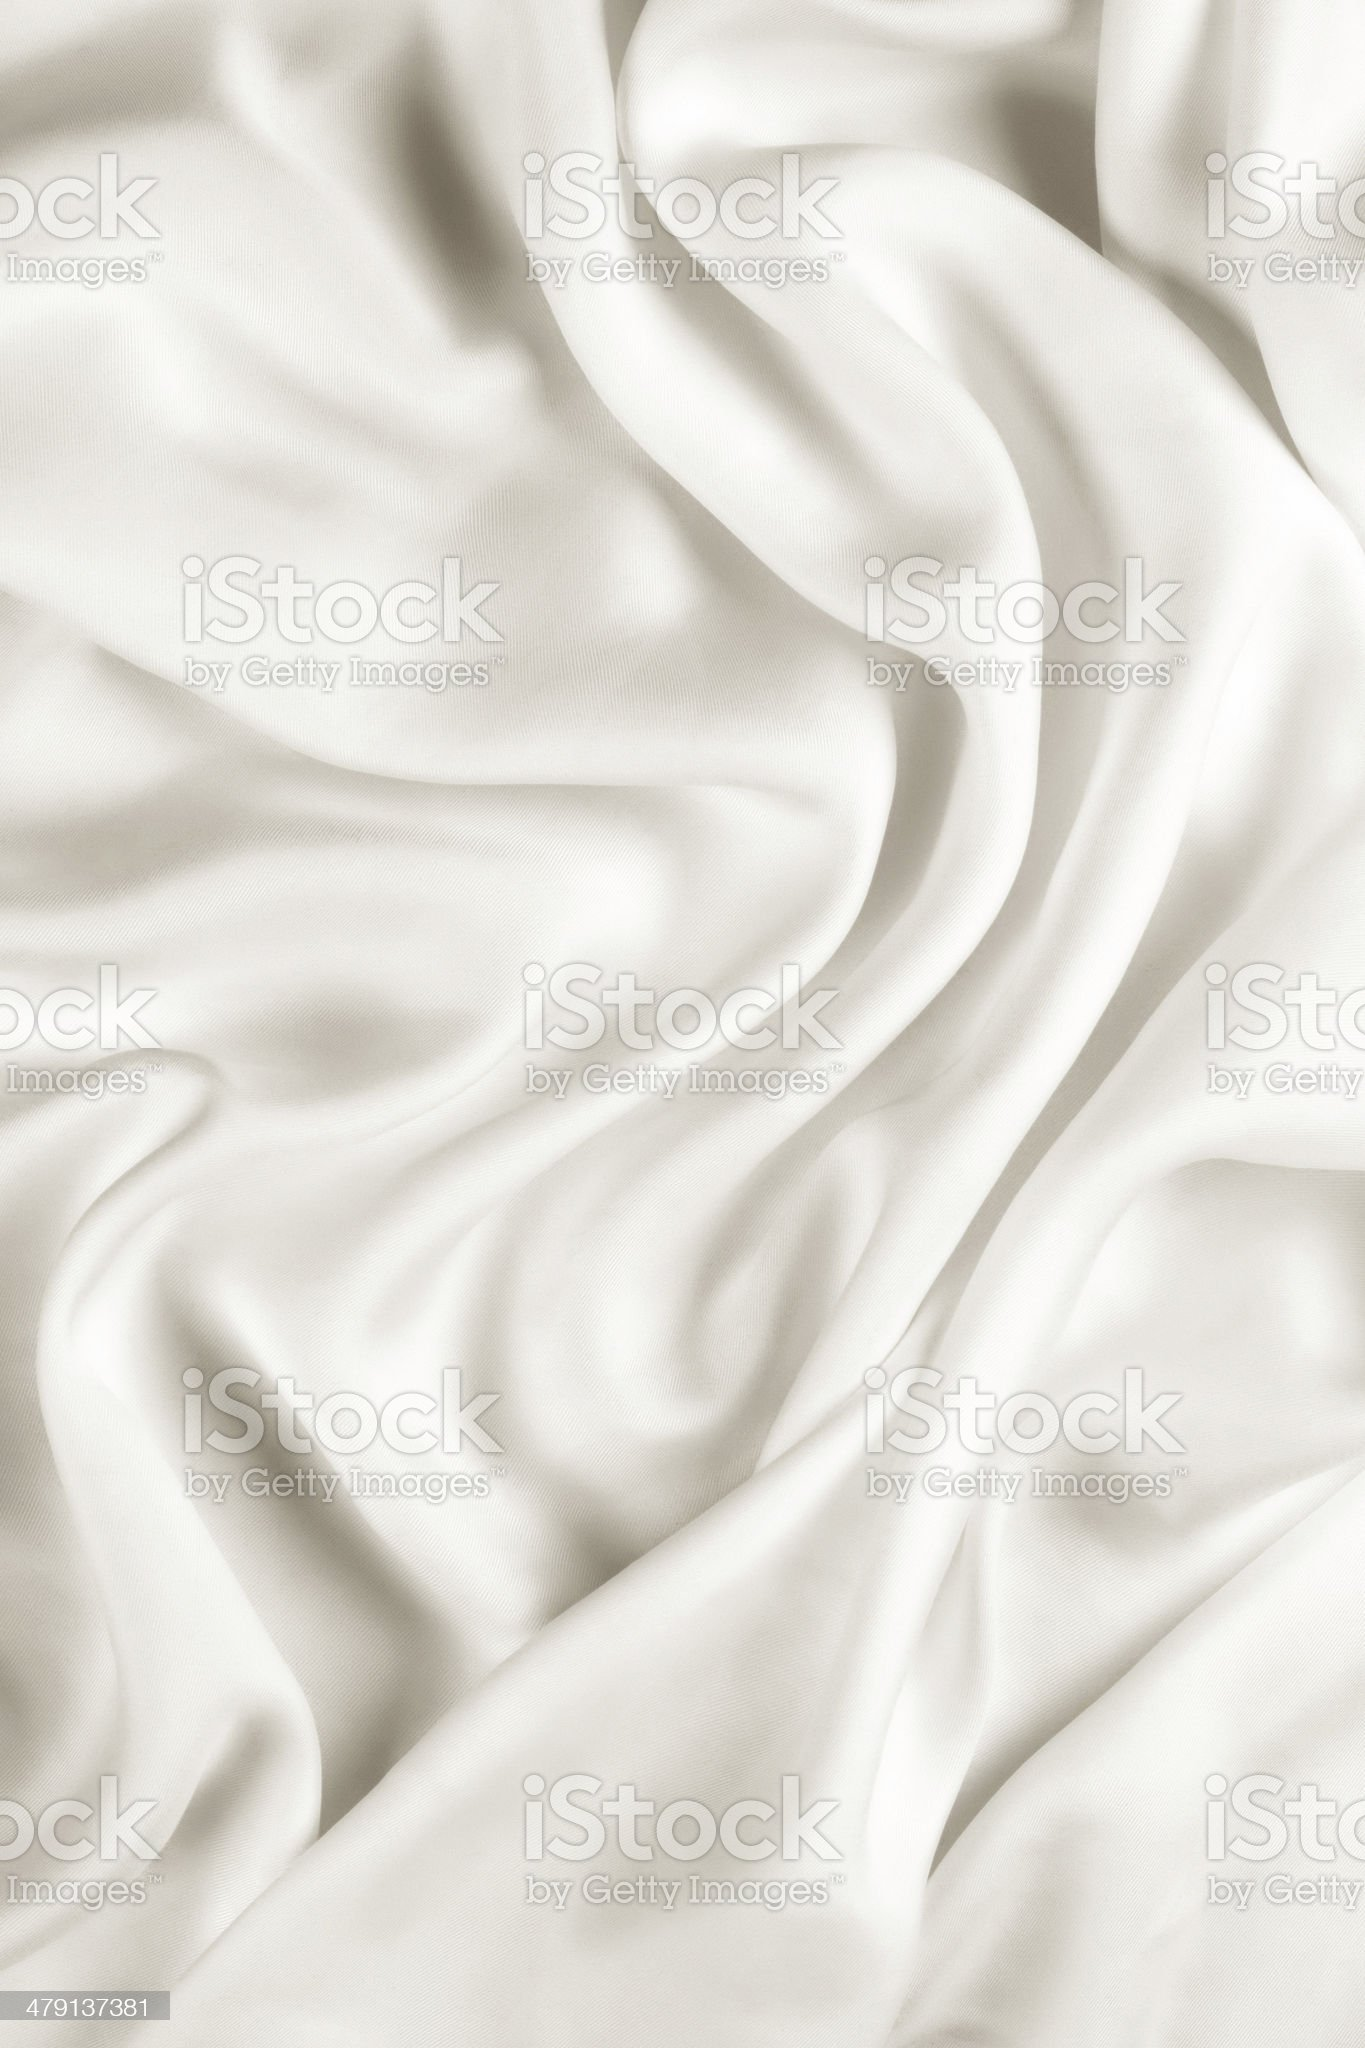 White Satin Material royalty-free stock photo